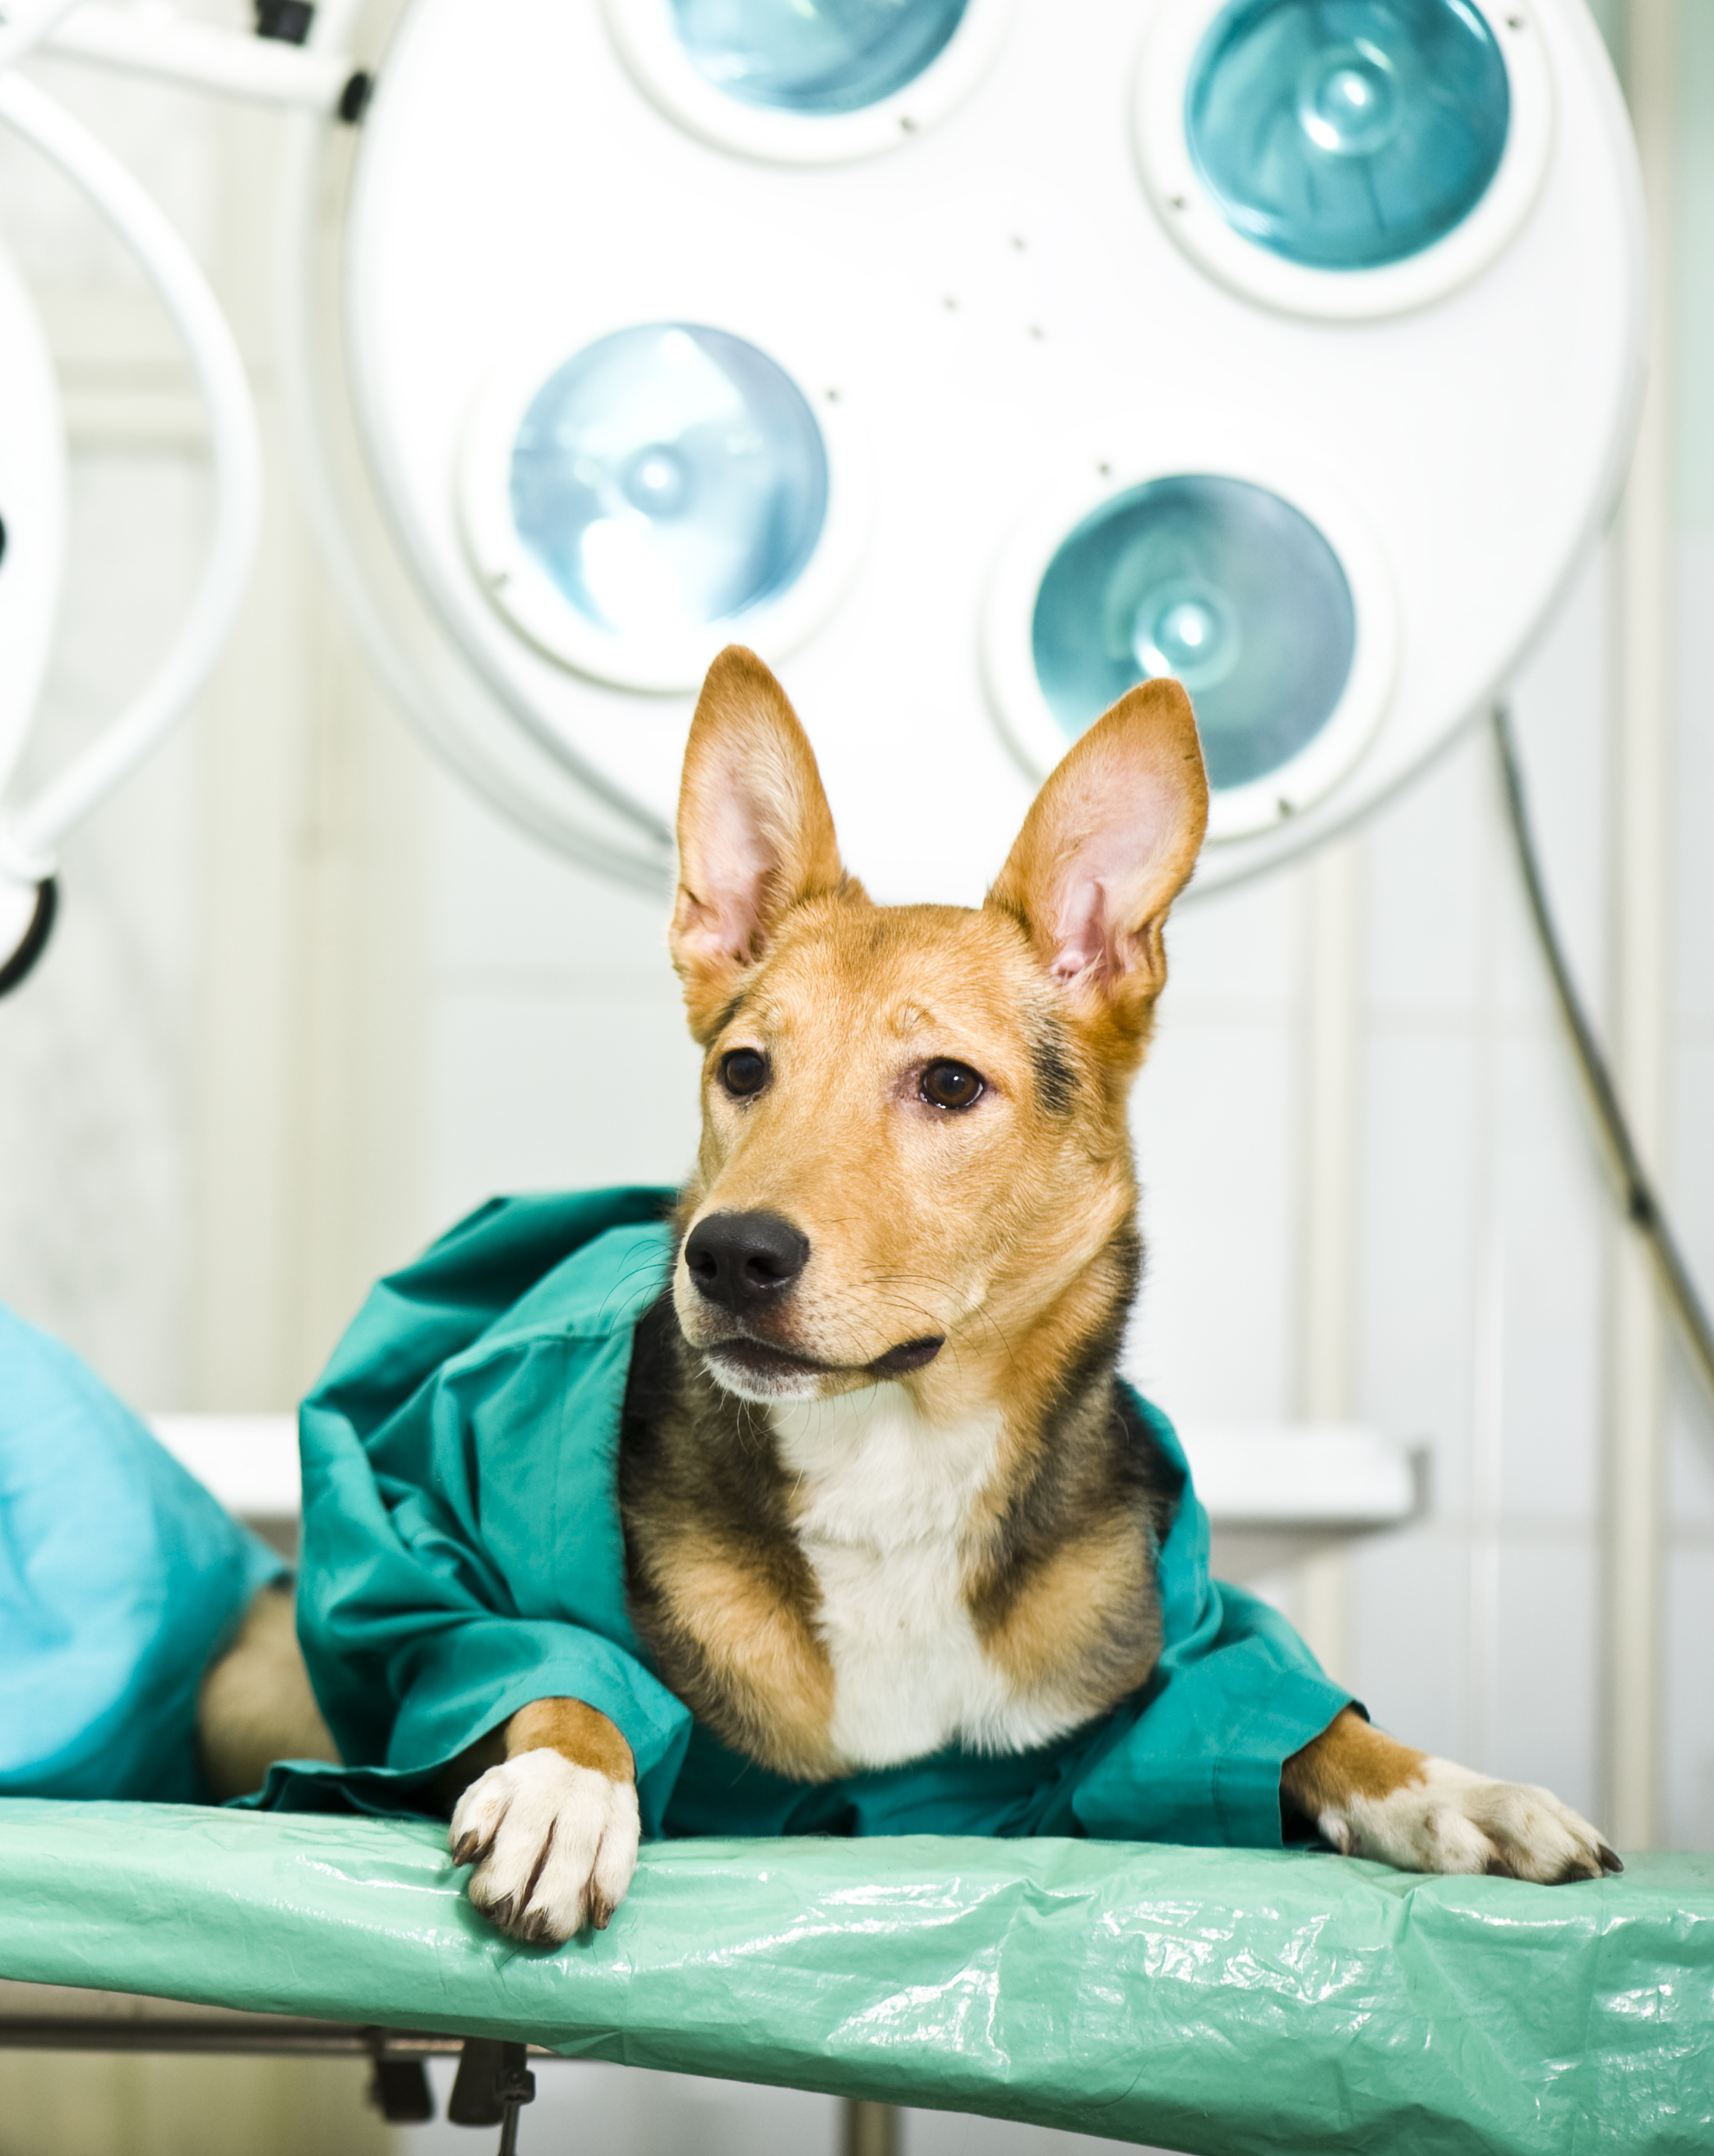 Dog on Surgery Table